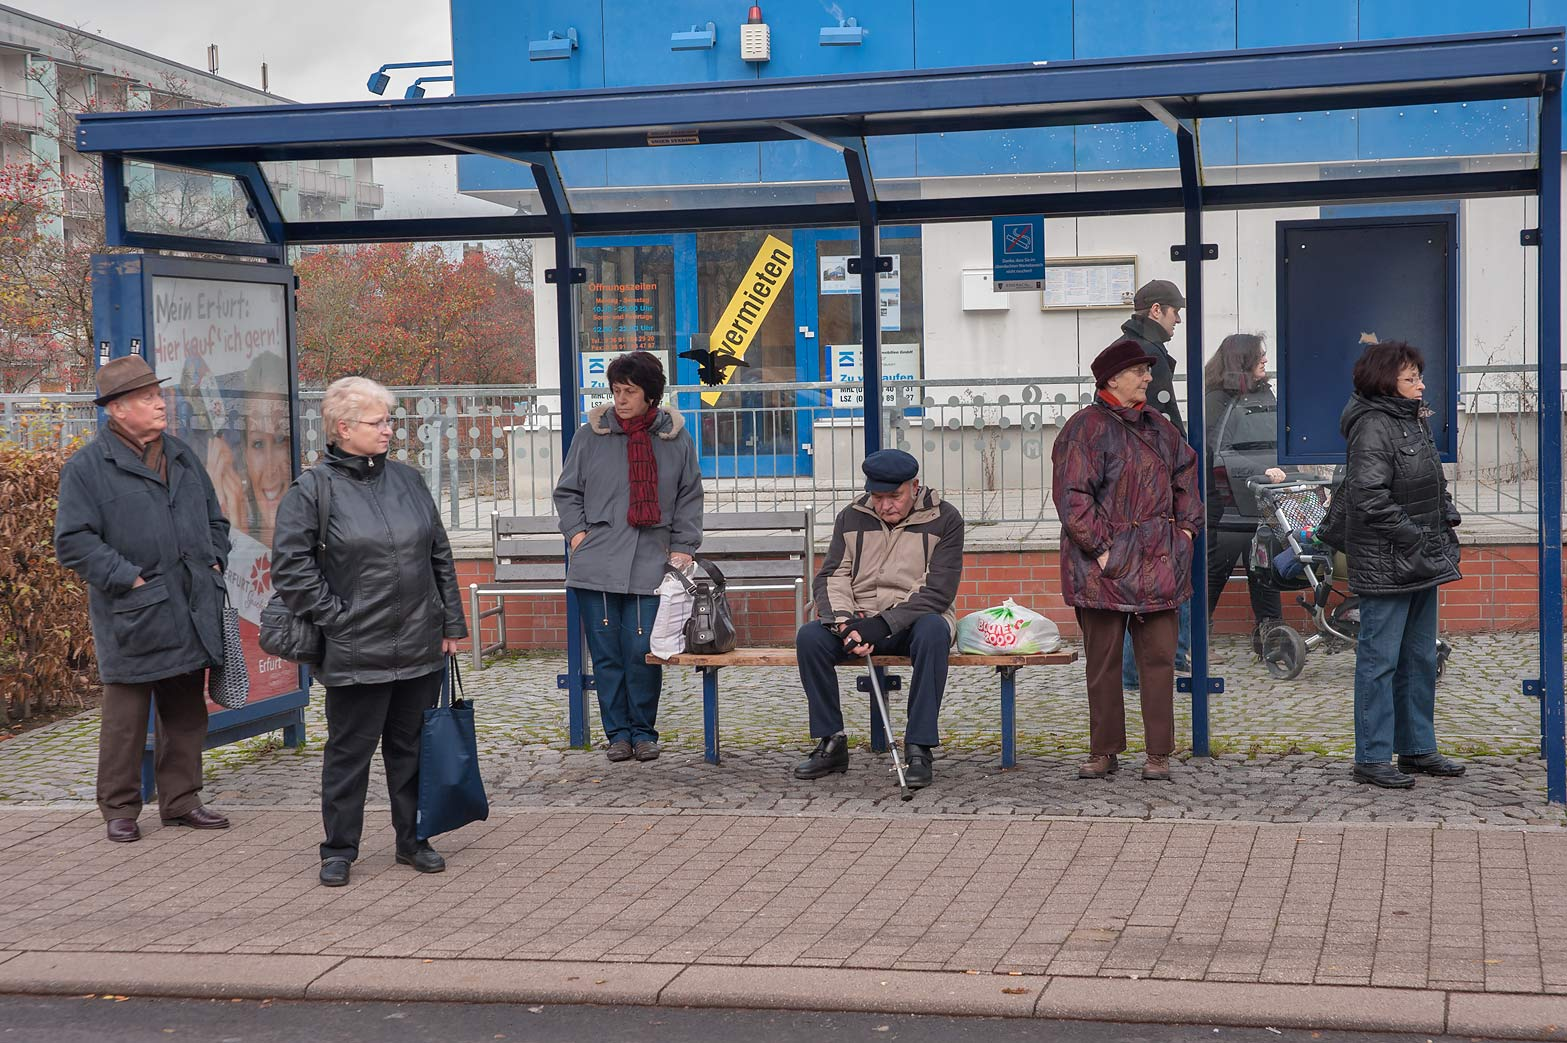 Bus Erfurt Slideshow 1313 20 Passengers Waiting On A Bus Stop Eisenach